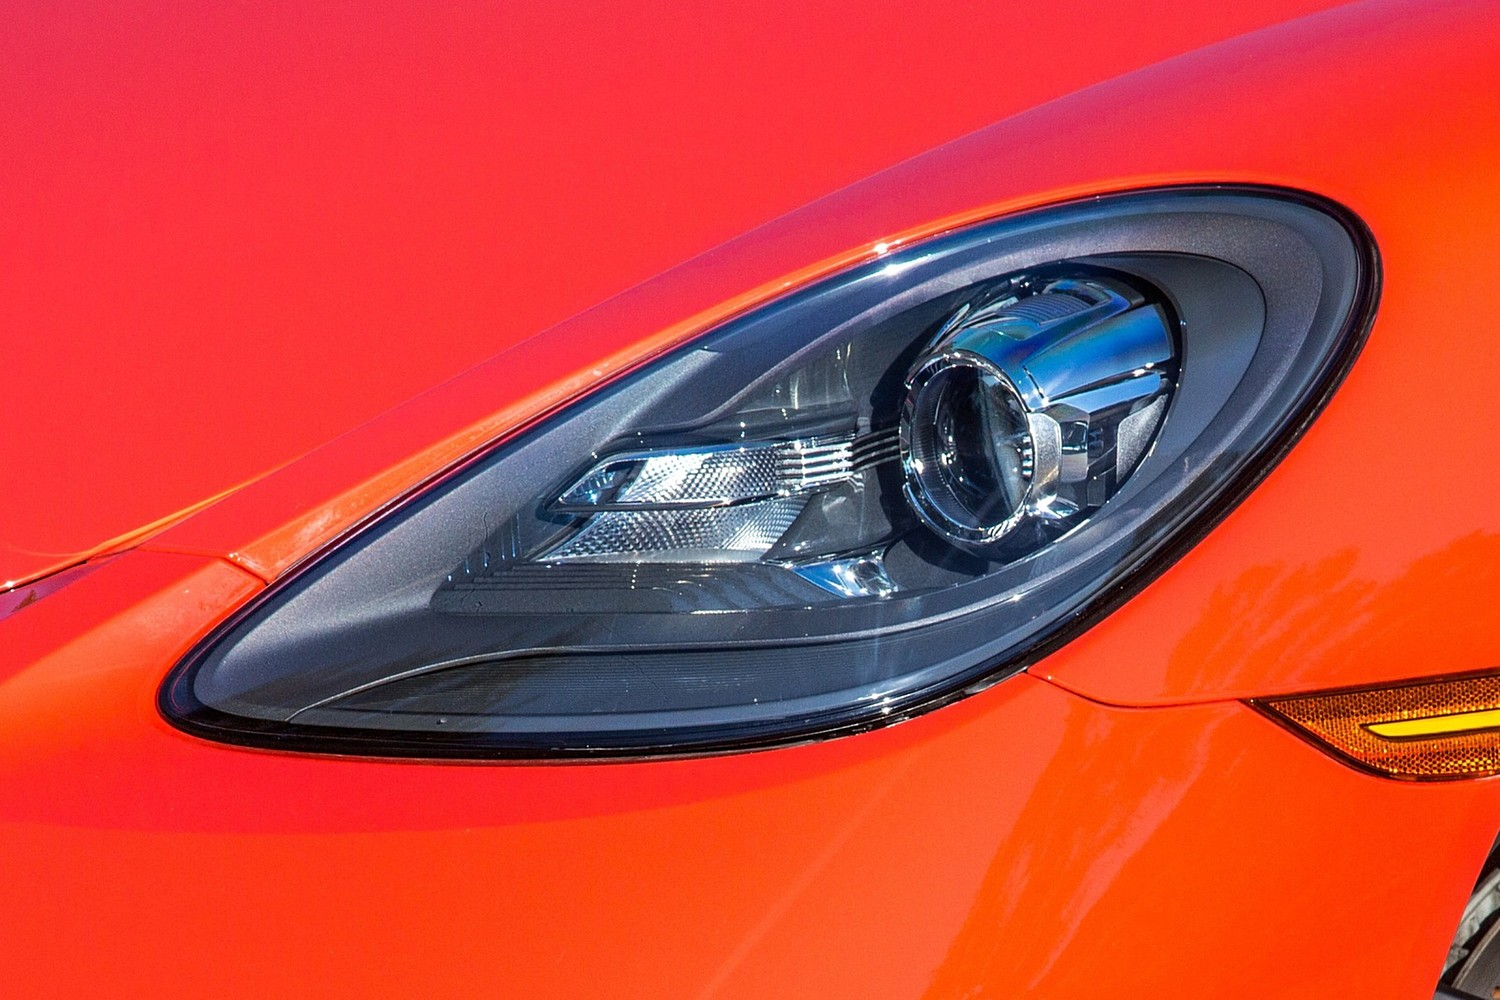 2018 Porsche 718 Cayman S Coupe Headlamp Detail